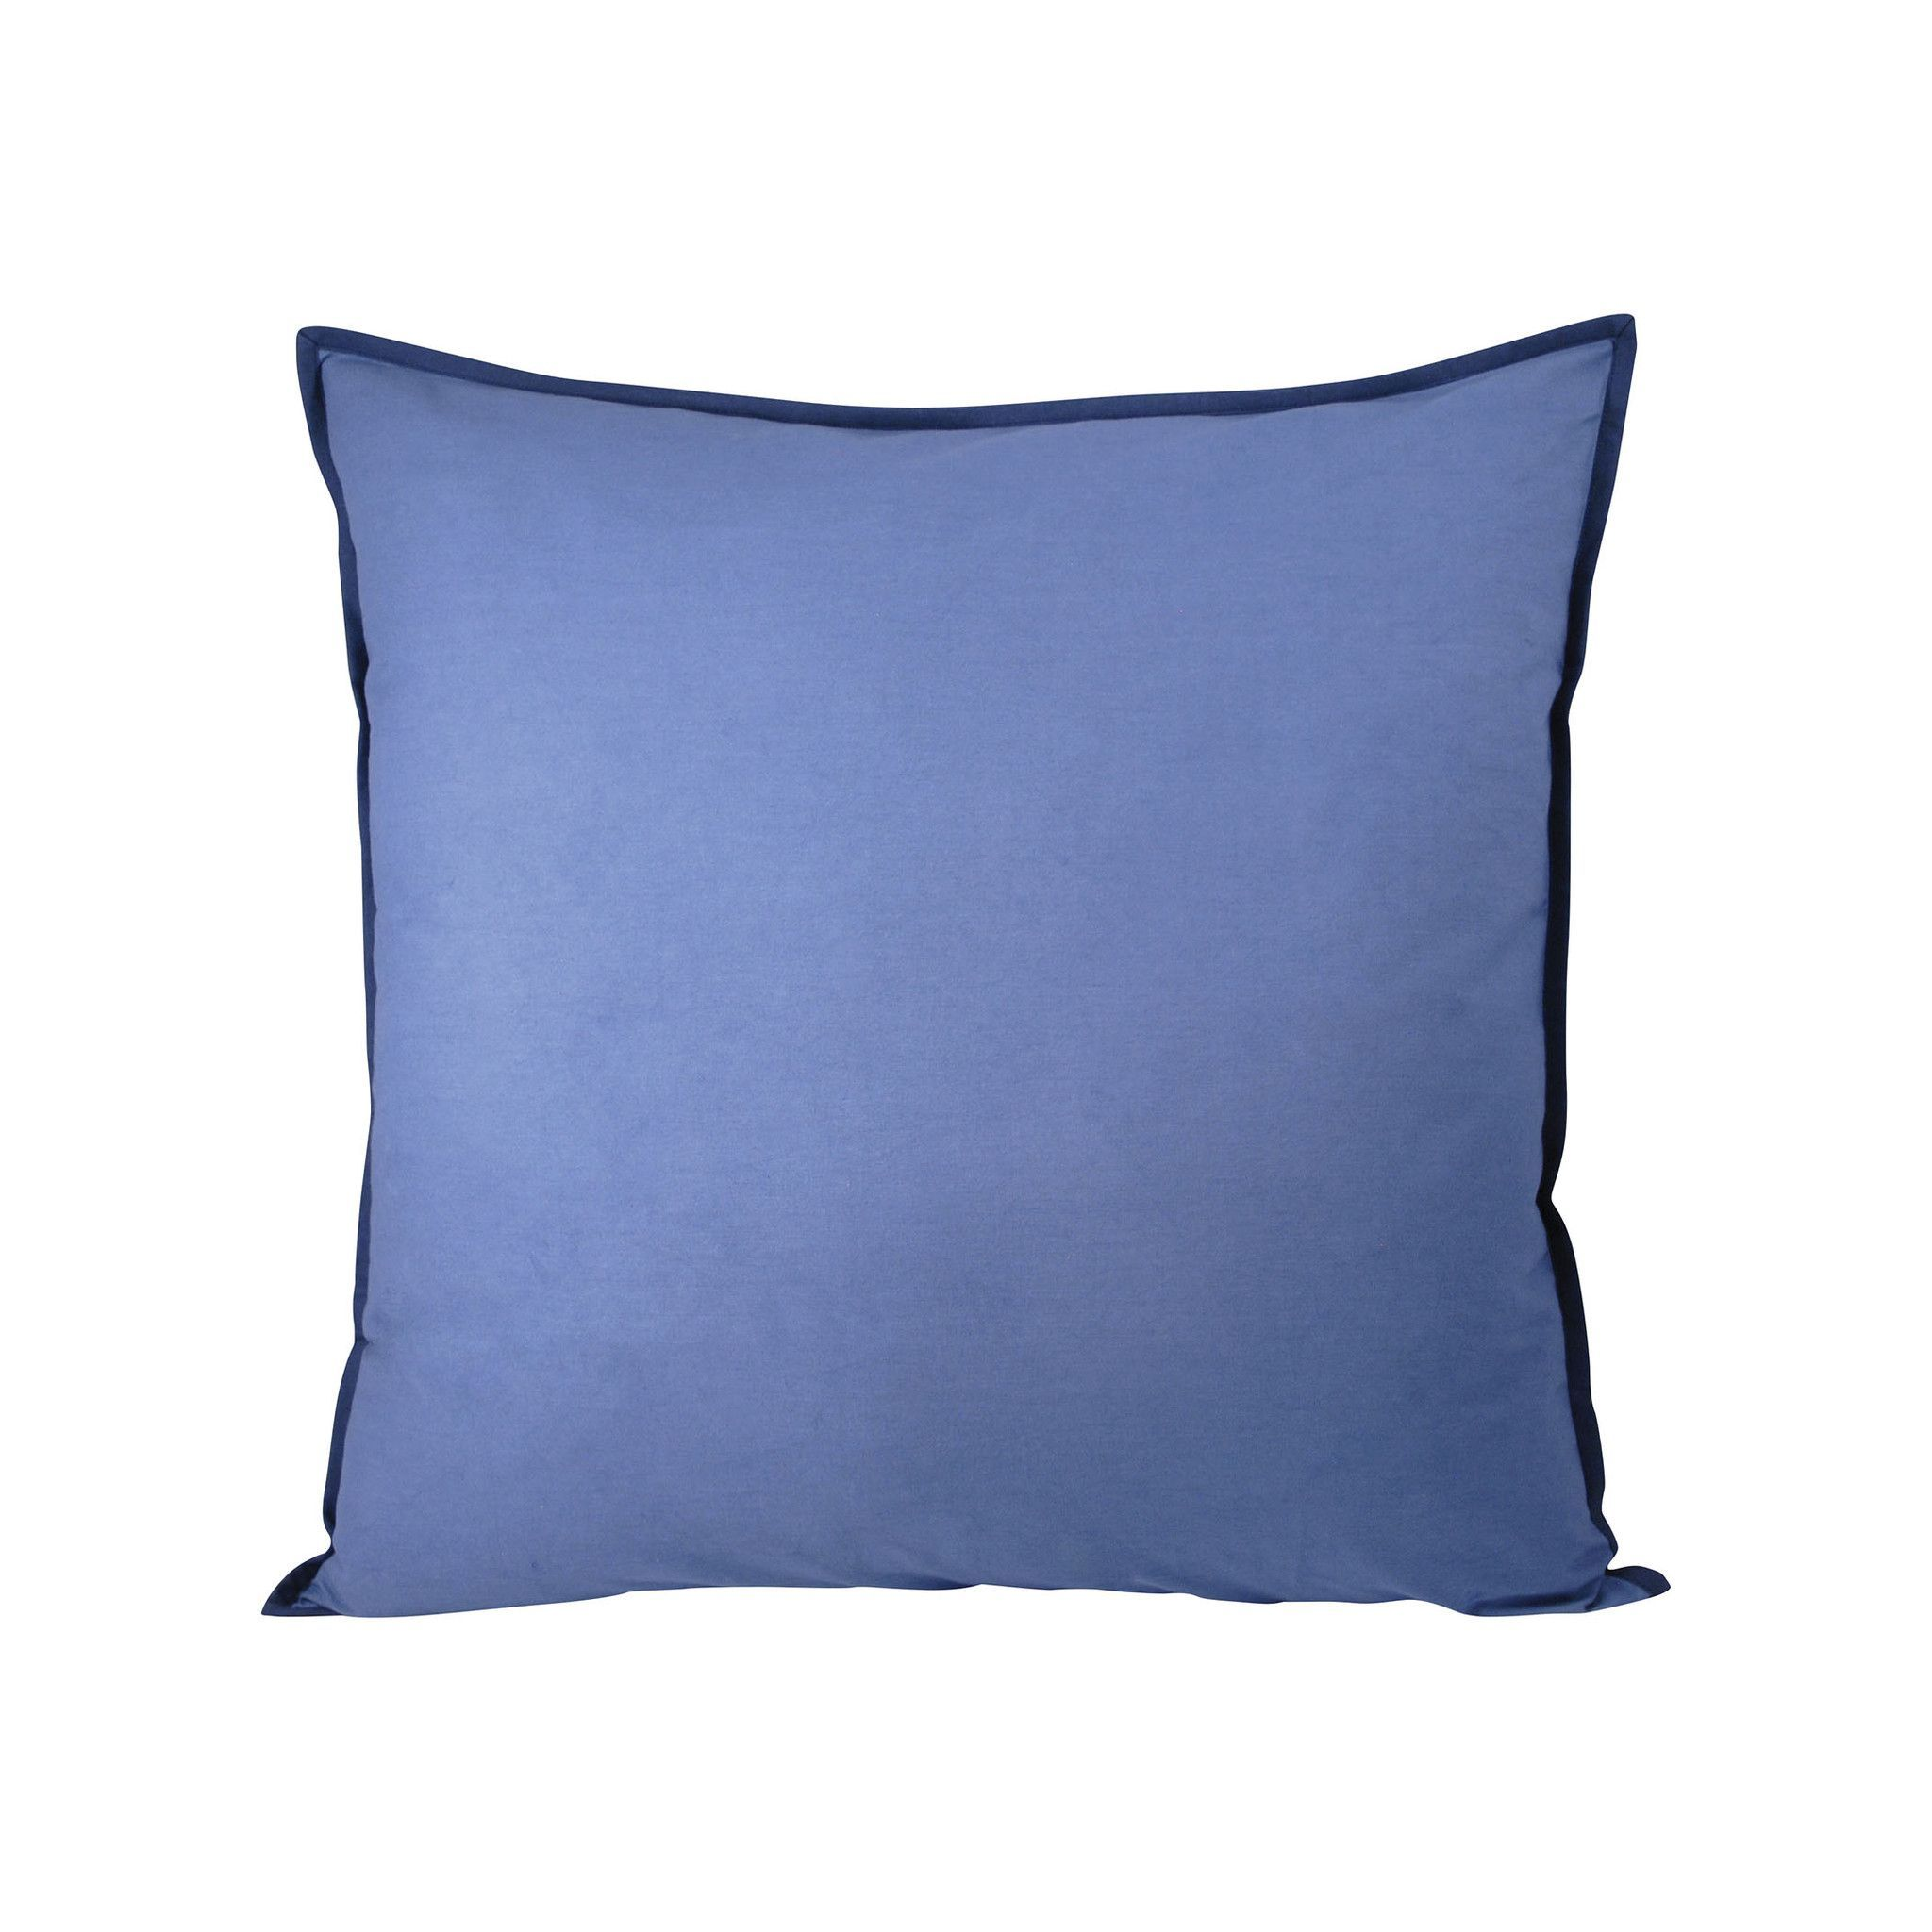 Dylan Pillow 24x24-Inch In Navy Navy